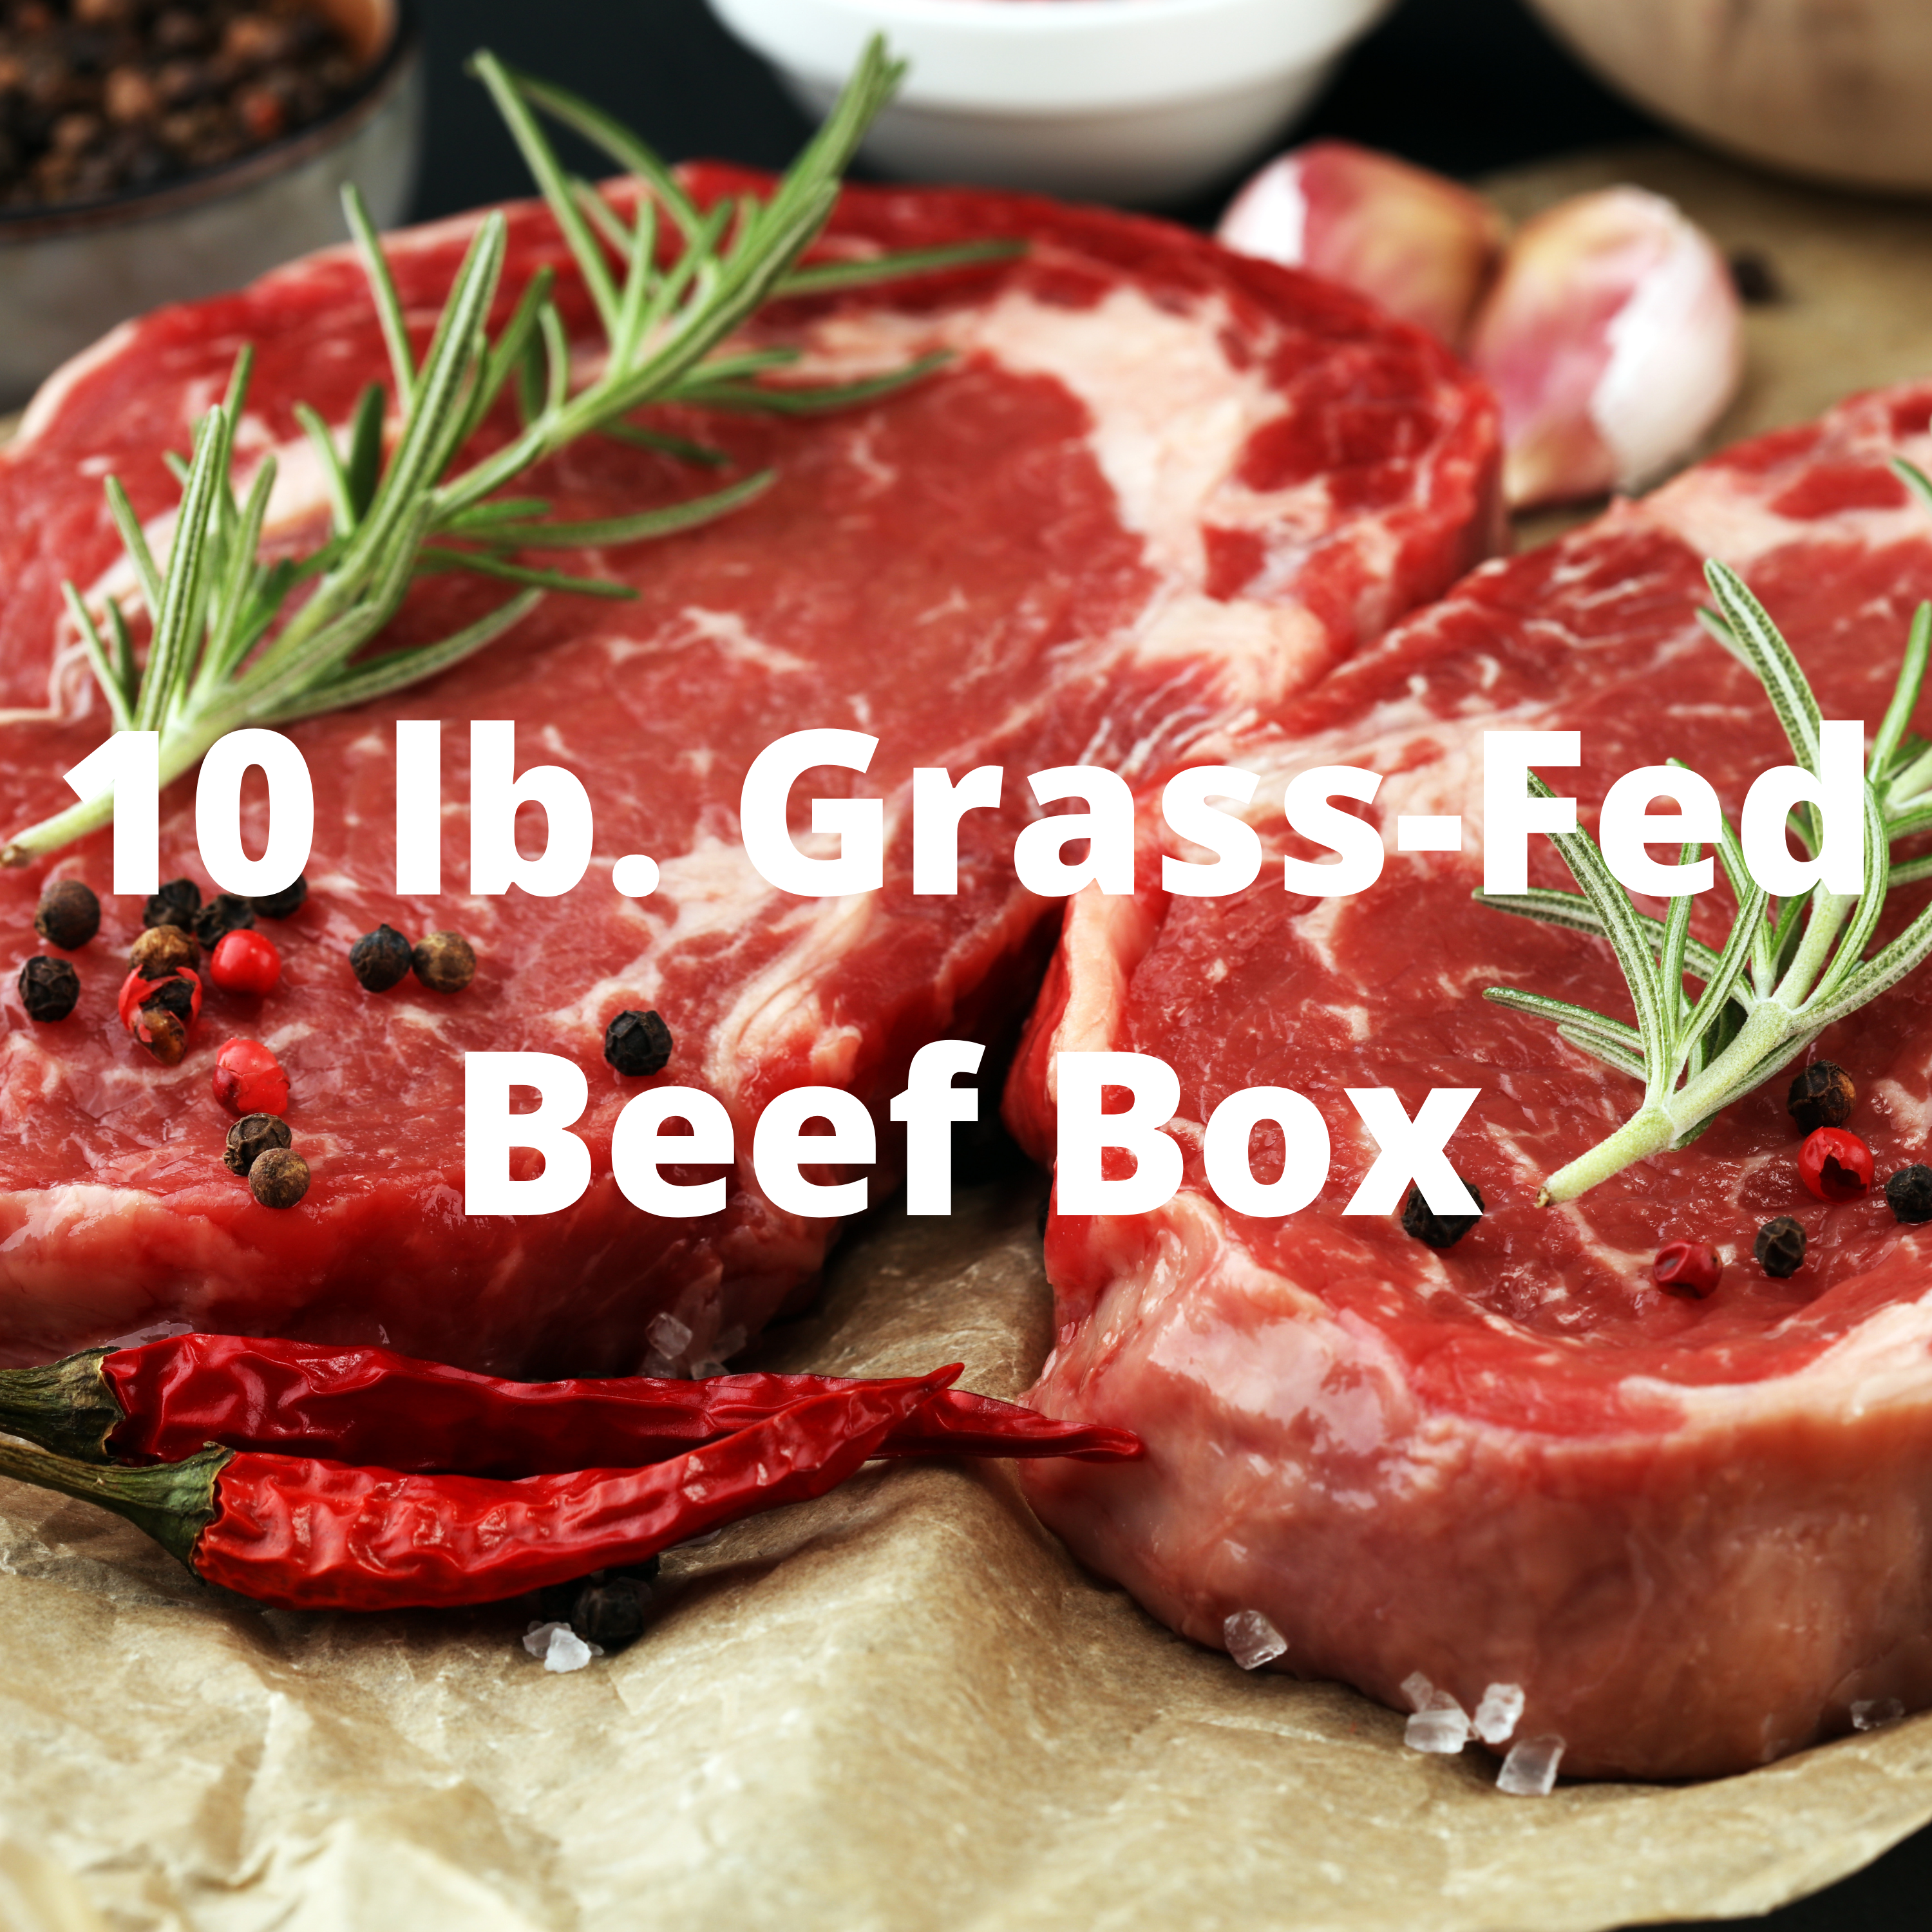 WIN - $150 Grass-Fed Beef Box from our farm in Texas!